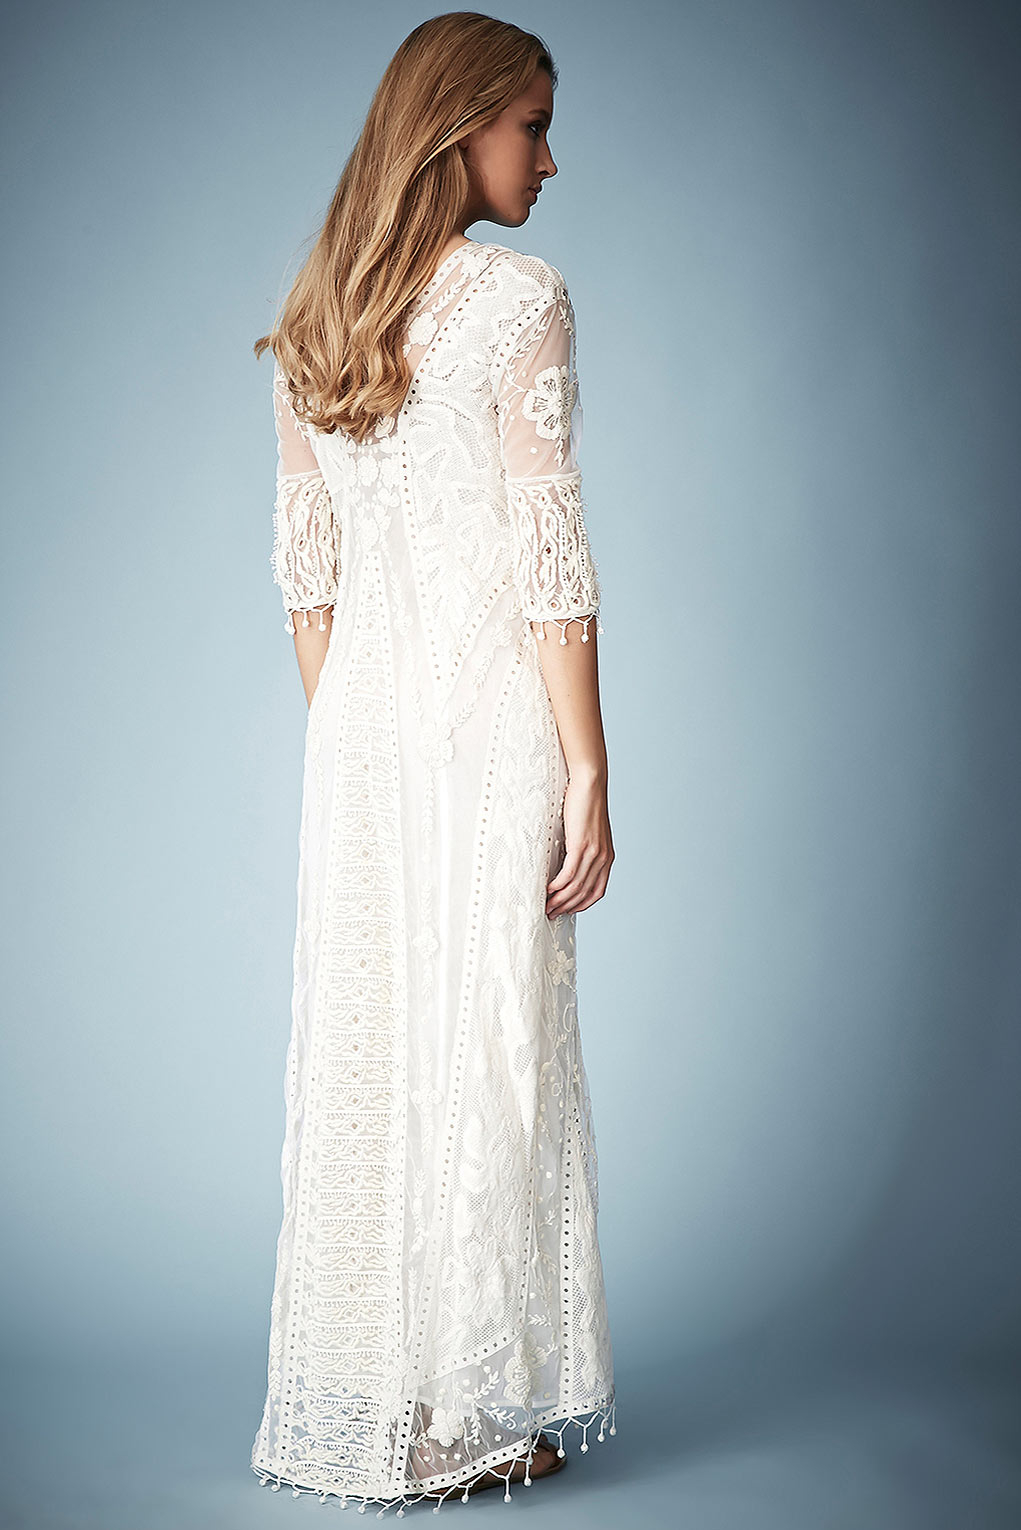 Lyst Topshop Crochet Lace Maxi Dress By Kate Moss For In